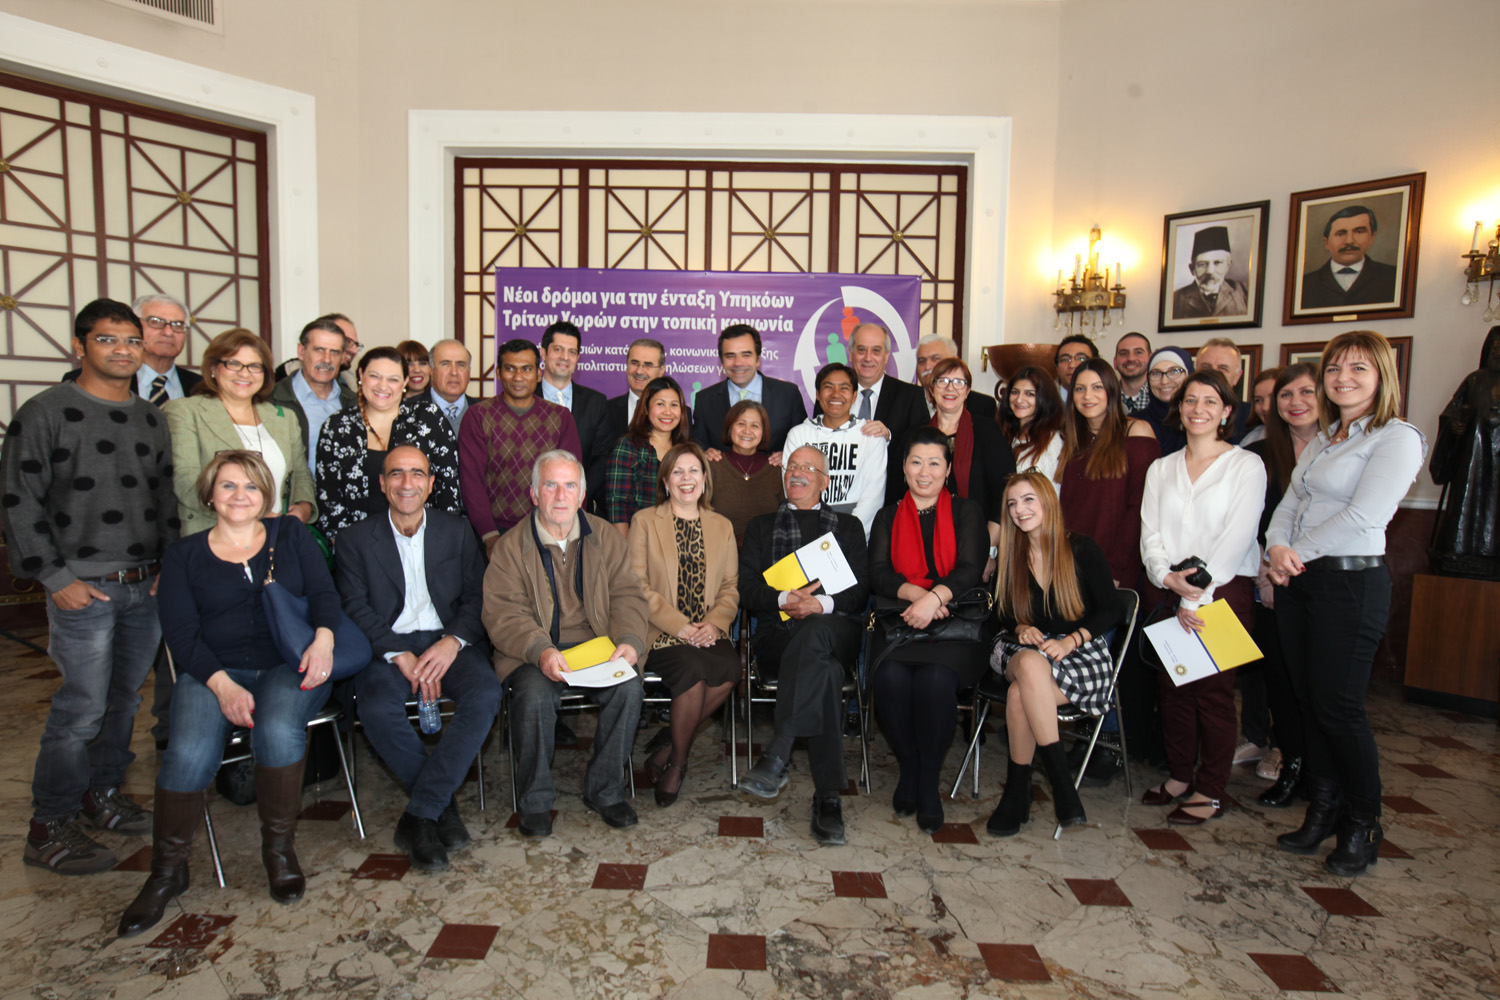 opening_press_conference_170216_10